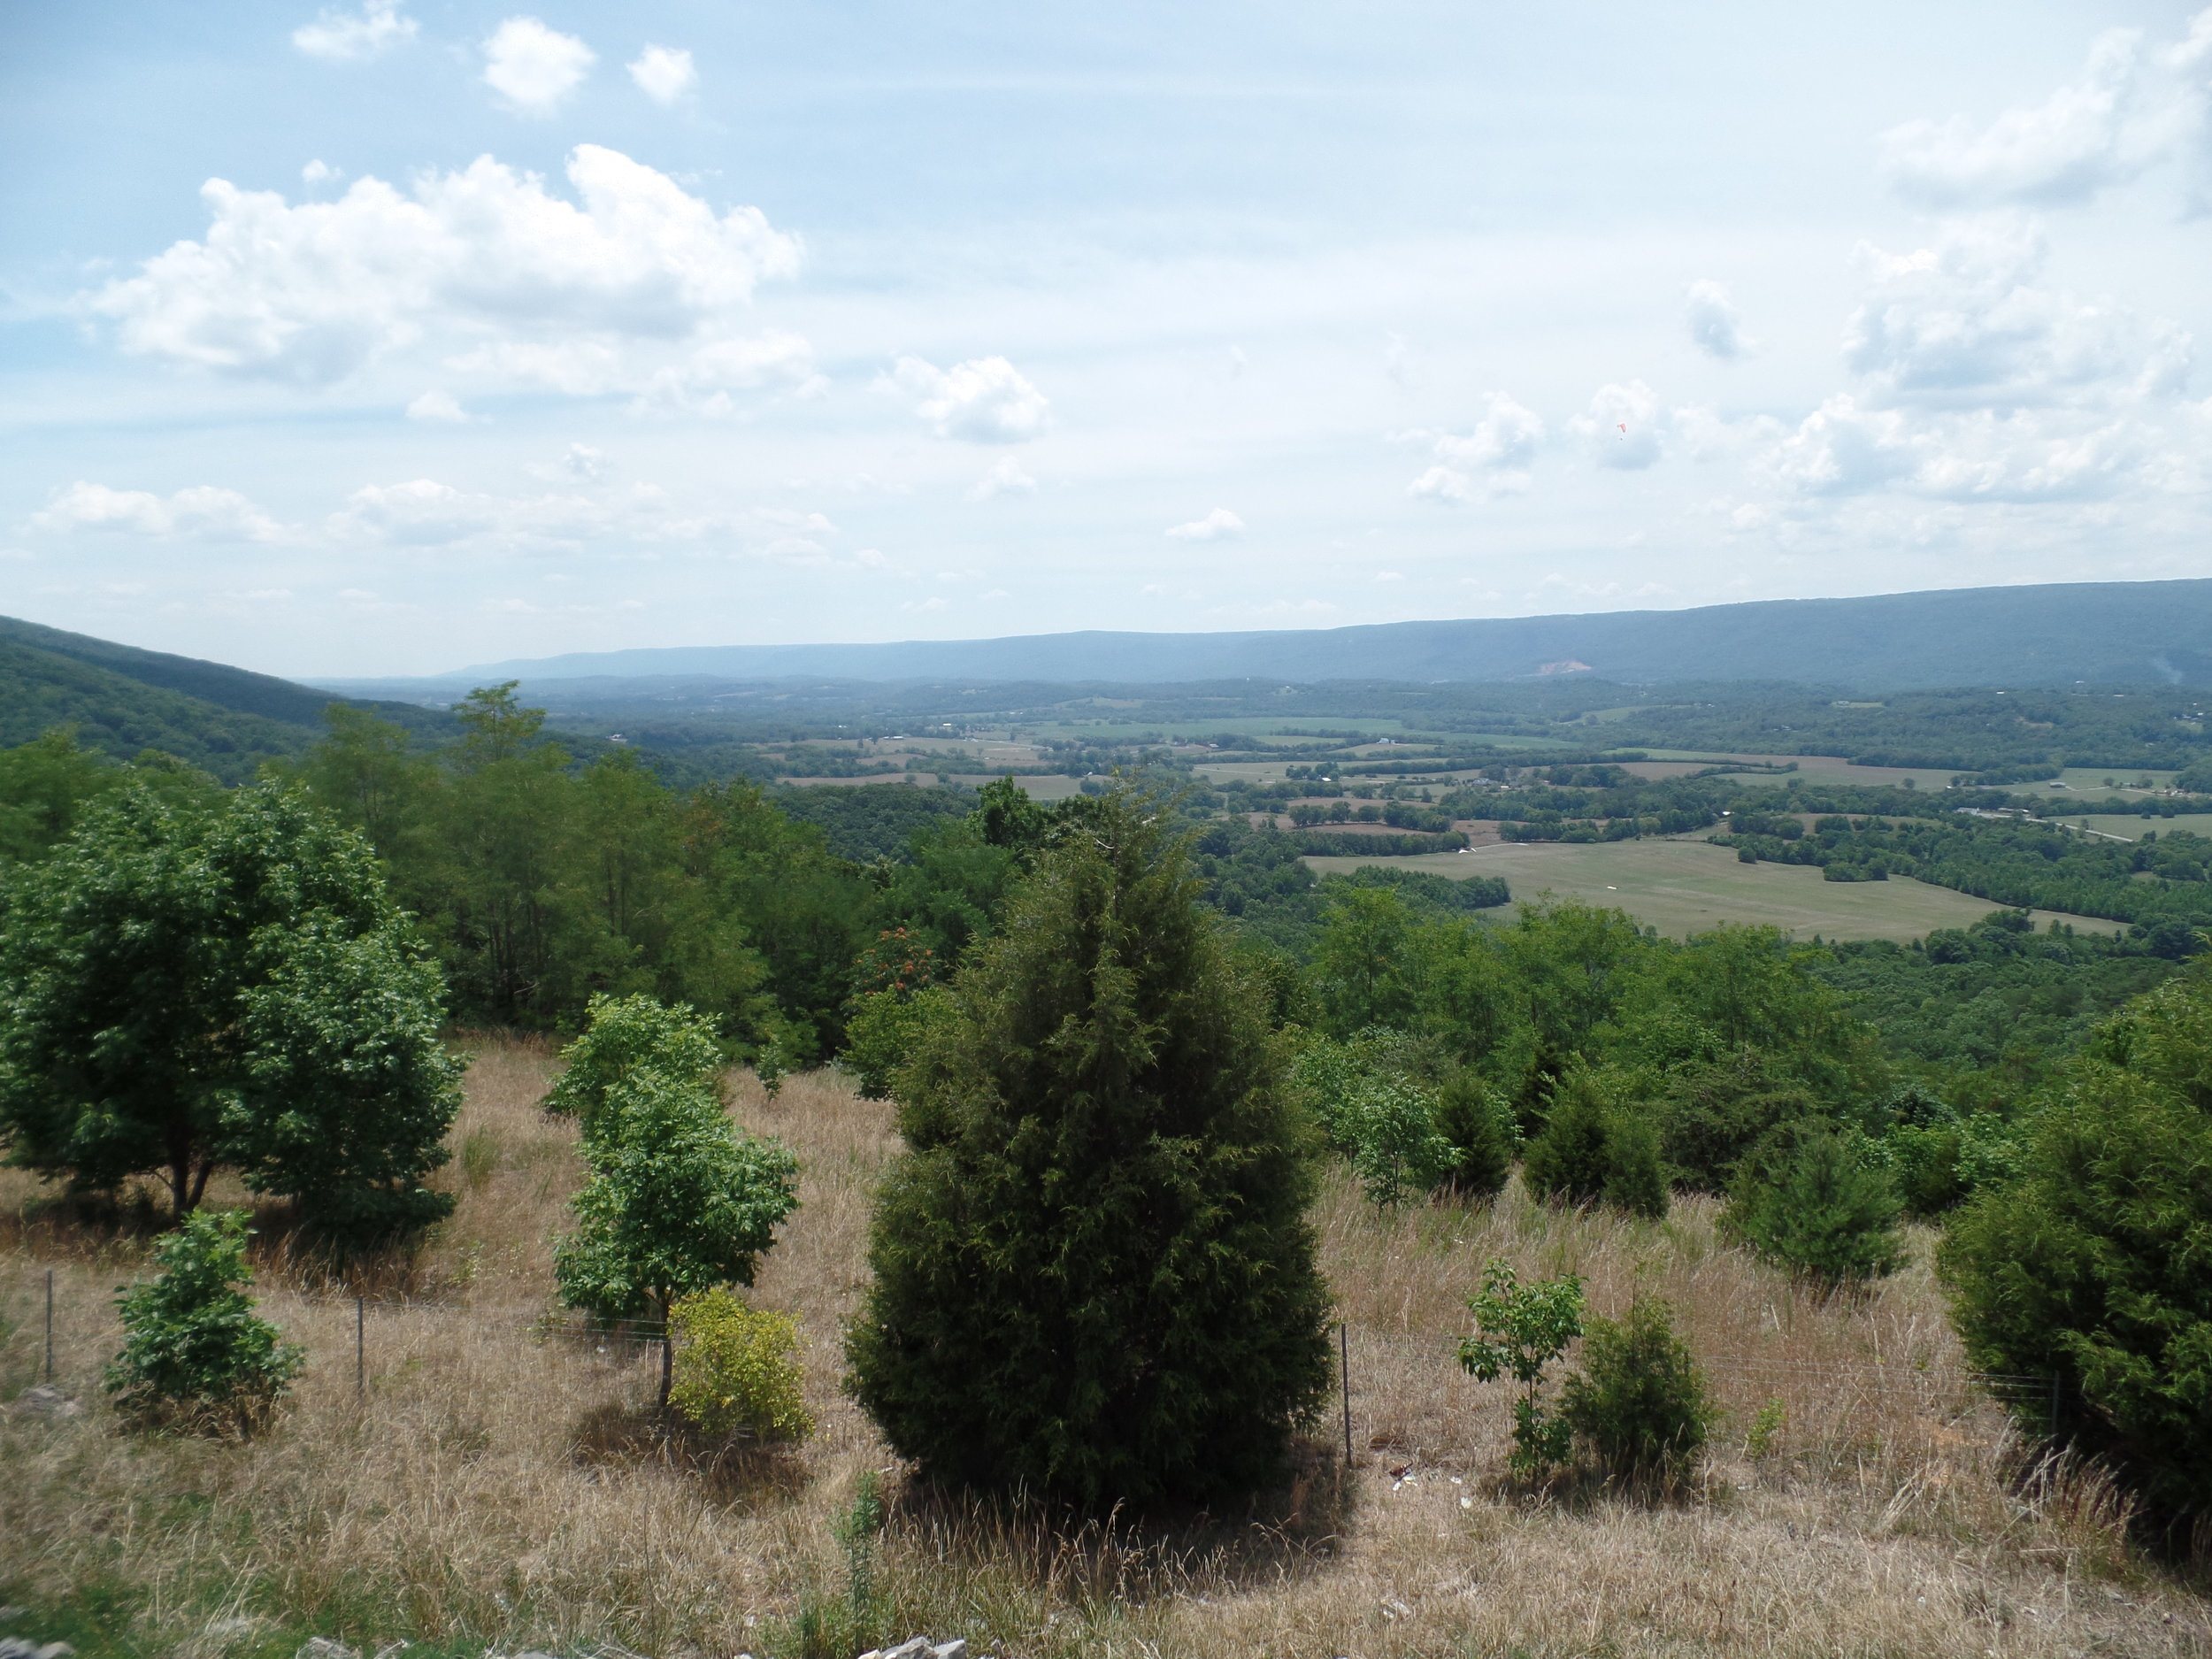 The overlook along TN 111 near Dunlap provides a stunning view of the Sequatchie Valley.